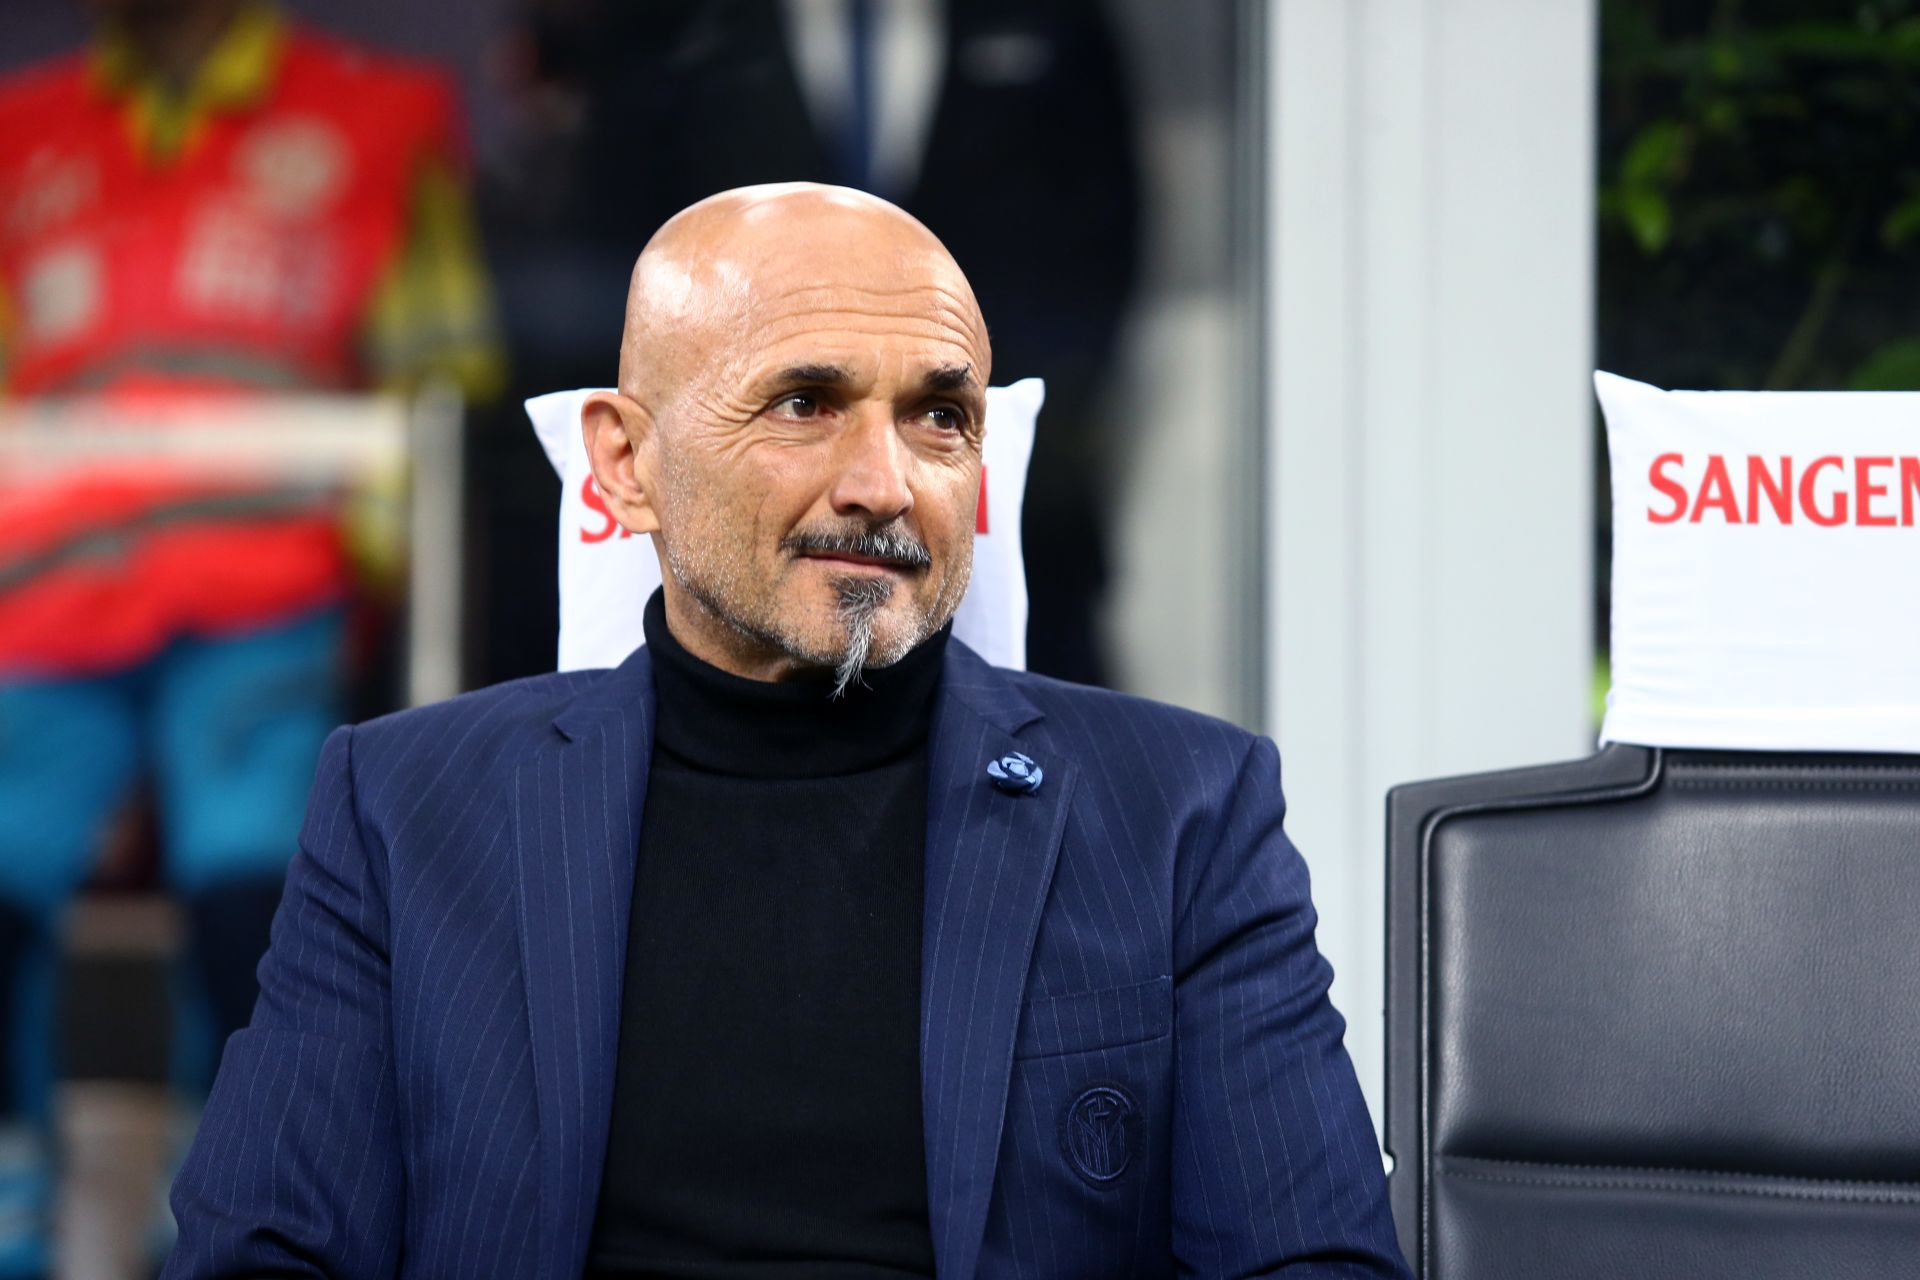 Head Coach of FC Internazionale Luciano Spalletti during the Serie A Tim match between FC Internazionale and AC Chievo Verona at Stadio Giuseppe Meazza Milan Italy on 13 May 2019. (Photo Marco Canoniero) PILKA NOZNA LIGA WLOSKA SEZON 2018/2019 FOT. SPORTPHOTO24/NEWSPIX.PL ENGLAND OUT! --- Newspix.pl *** Local Caption *** www.newspix.pl mail us: info@newspix.pl call us: 0048 022 23 22 222 --- Polish Picture Agency by Ringier Axel Springer Poland